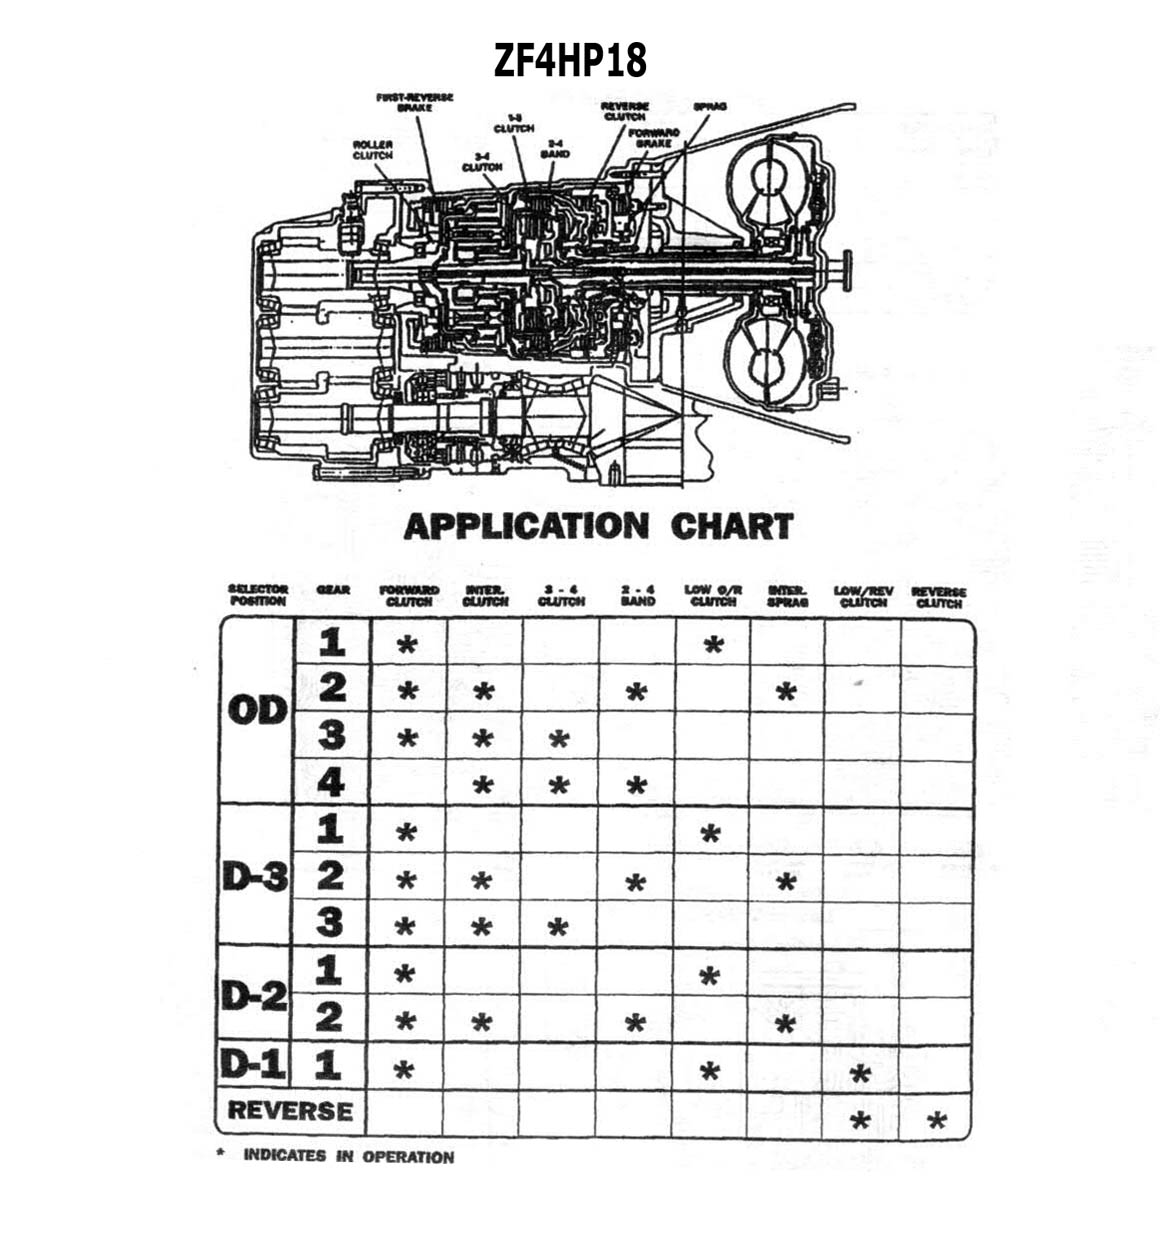 Transmission repair manuals ZF 4HP18 | Instructions for rebuild